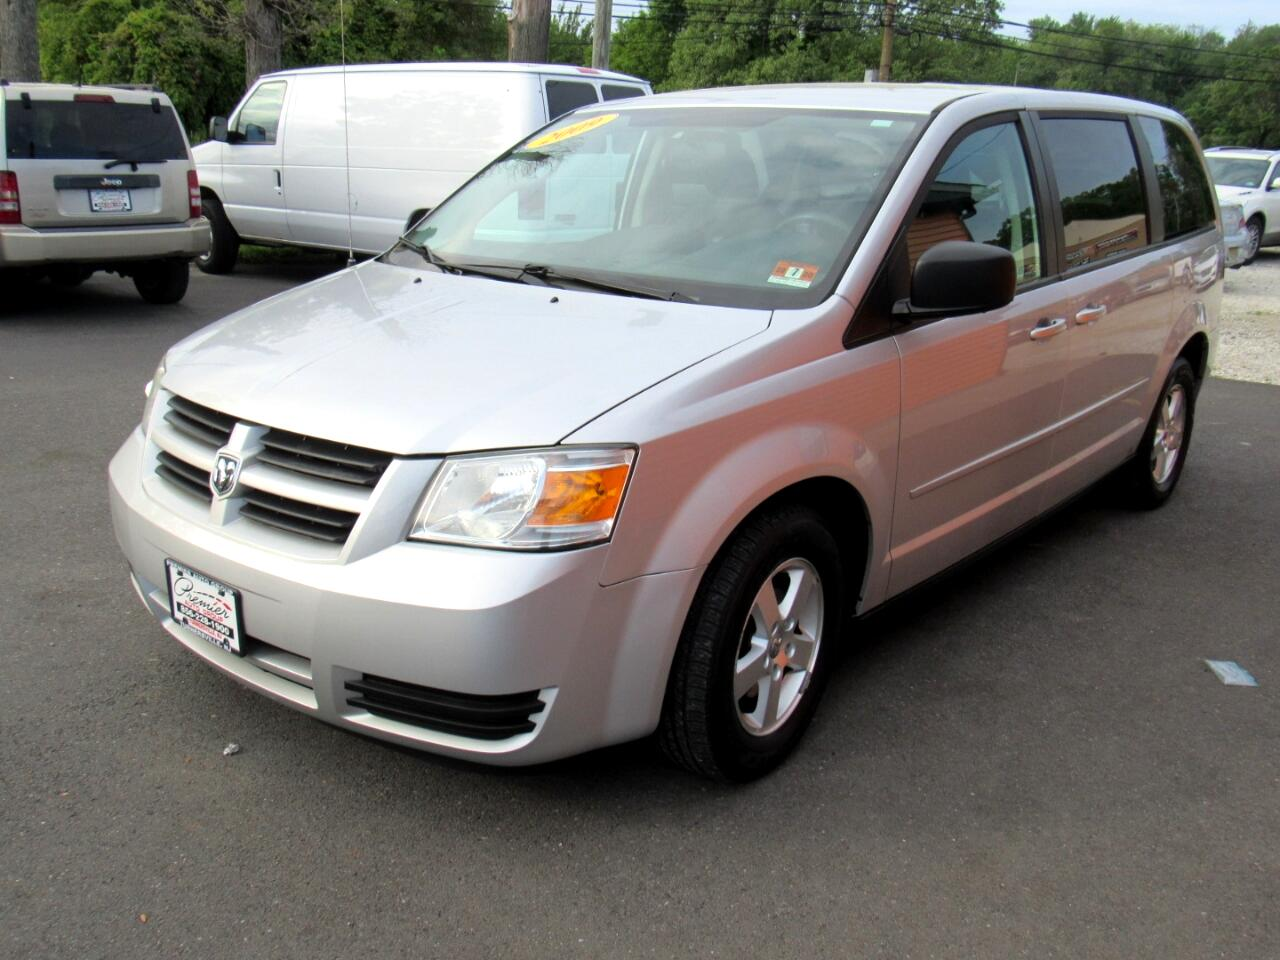 Toyota Turnersville Nj >> Used 2009 Dodge Grand Caravan 4dr Wgn SE for Sale in Turnersville NJ 08012 Premier Auto Group